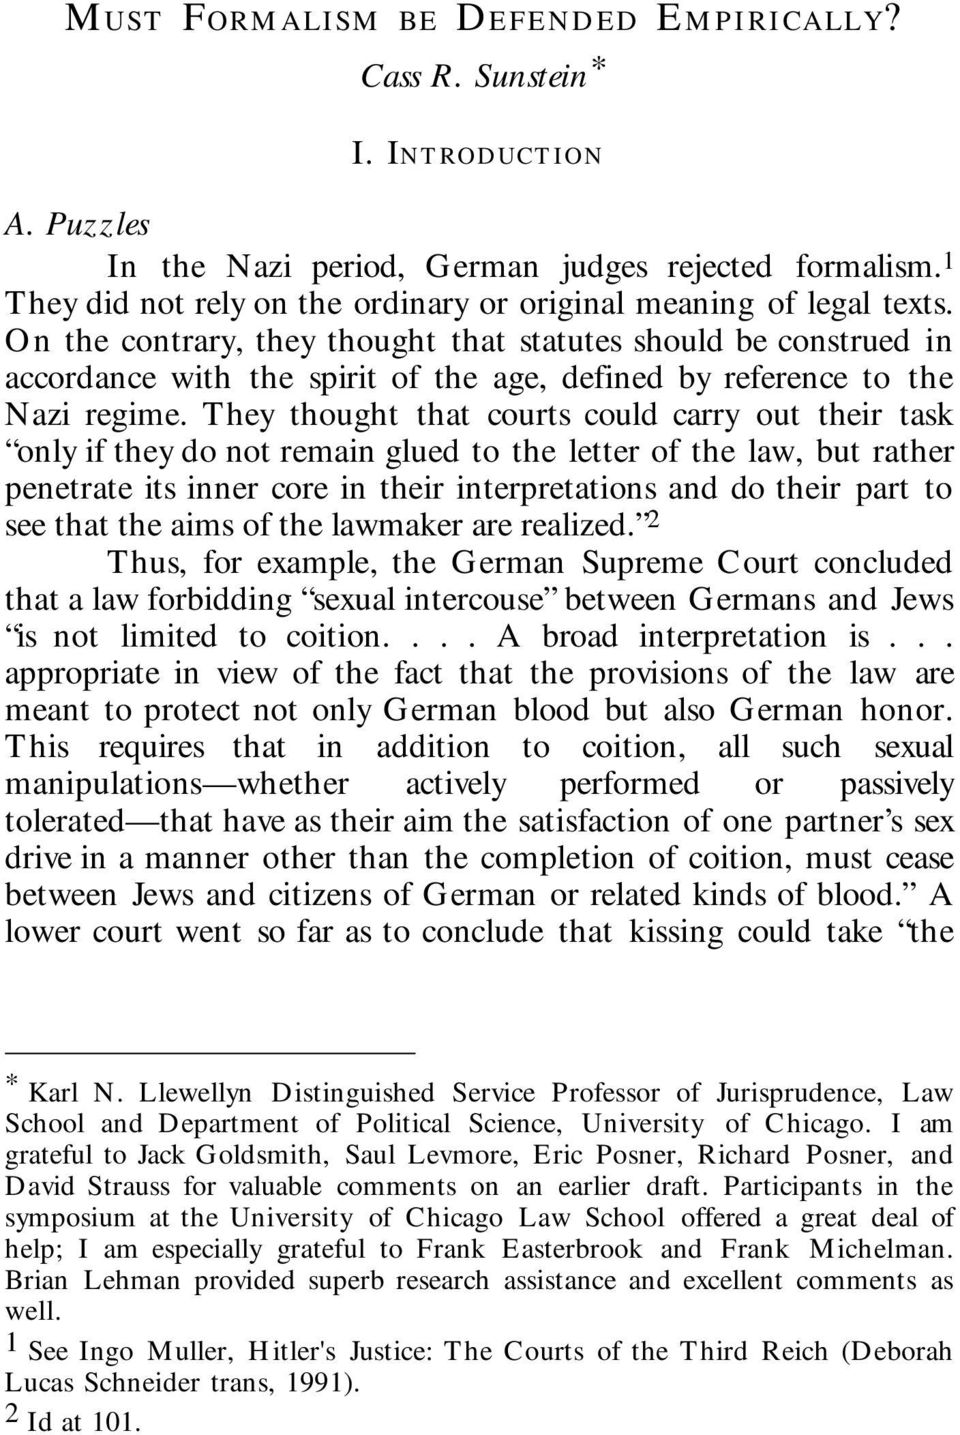 On the contrary, they thought that statutes should be construed in accordance with the spirit of the age, defined by reference to the Nazi regime.